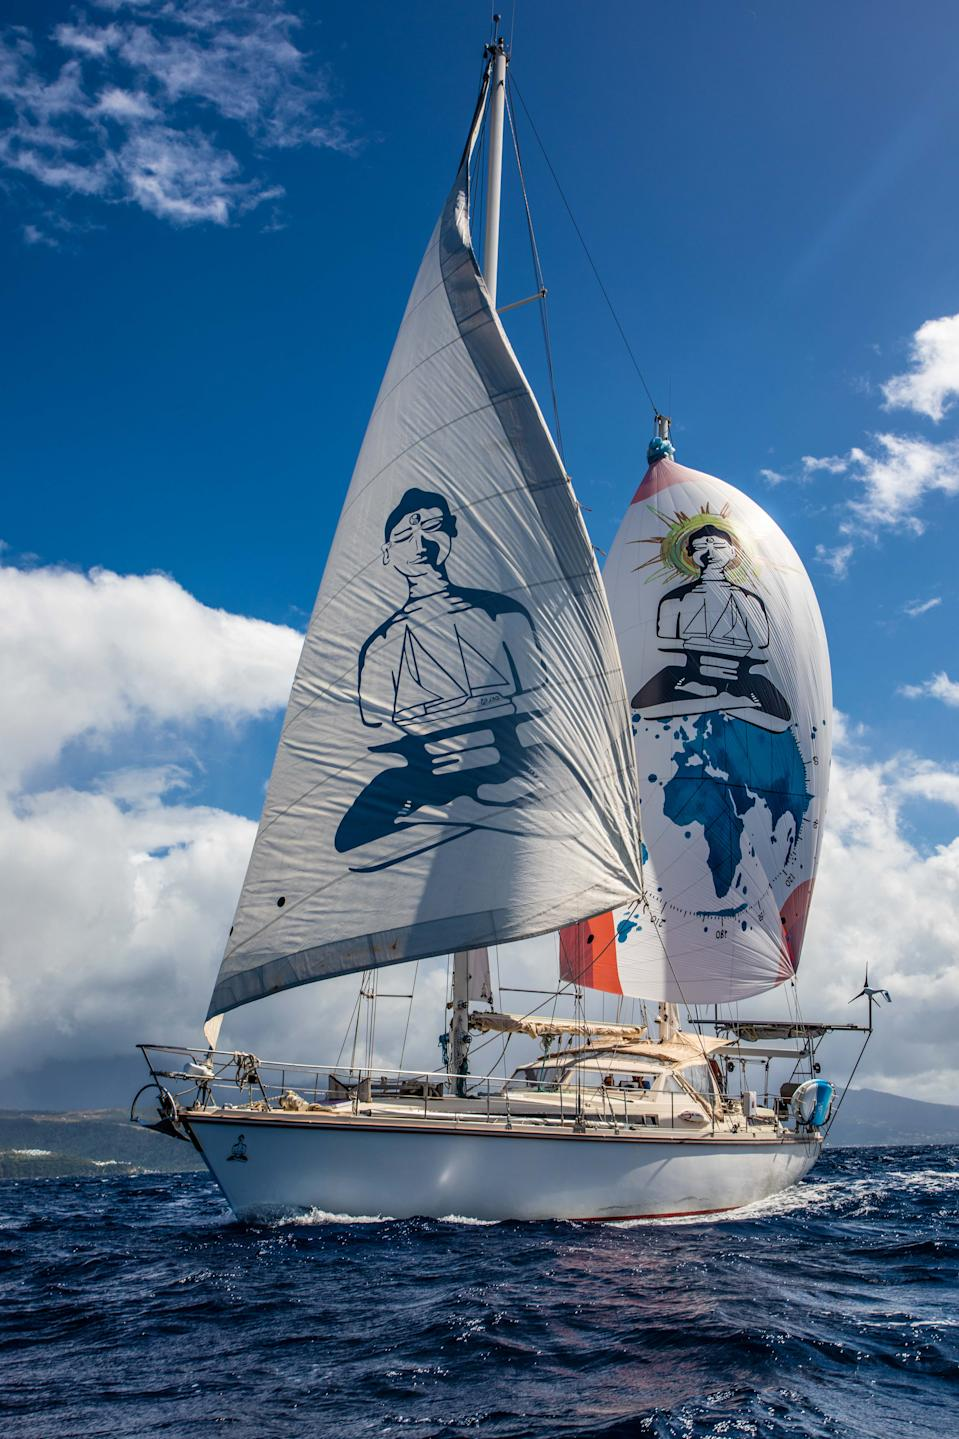 The distinctive Buddha sails of the SV Delos. (Photo courtesy SV Delos)